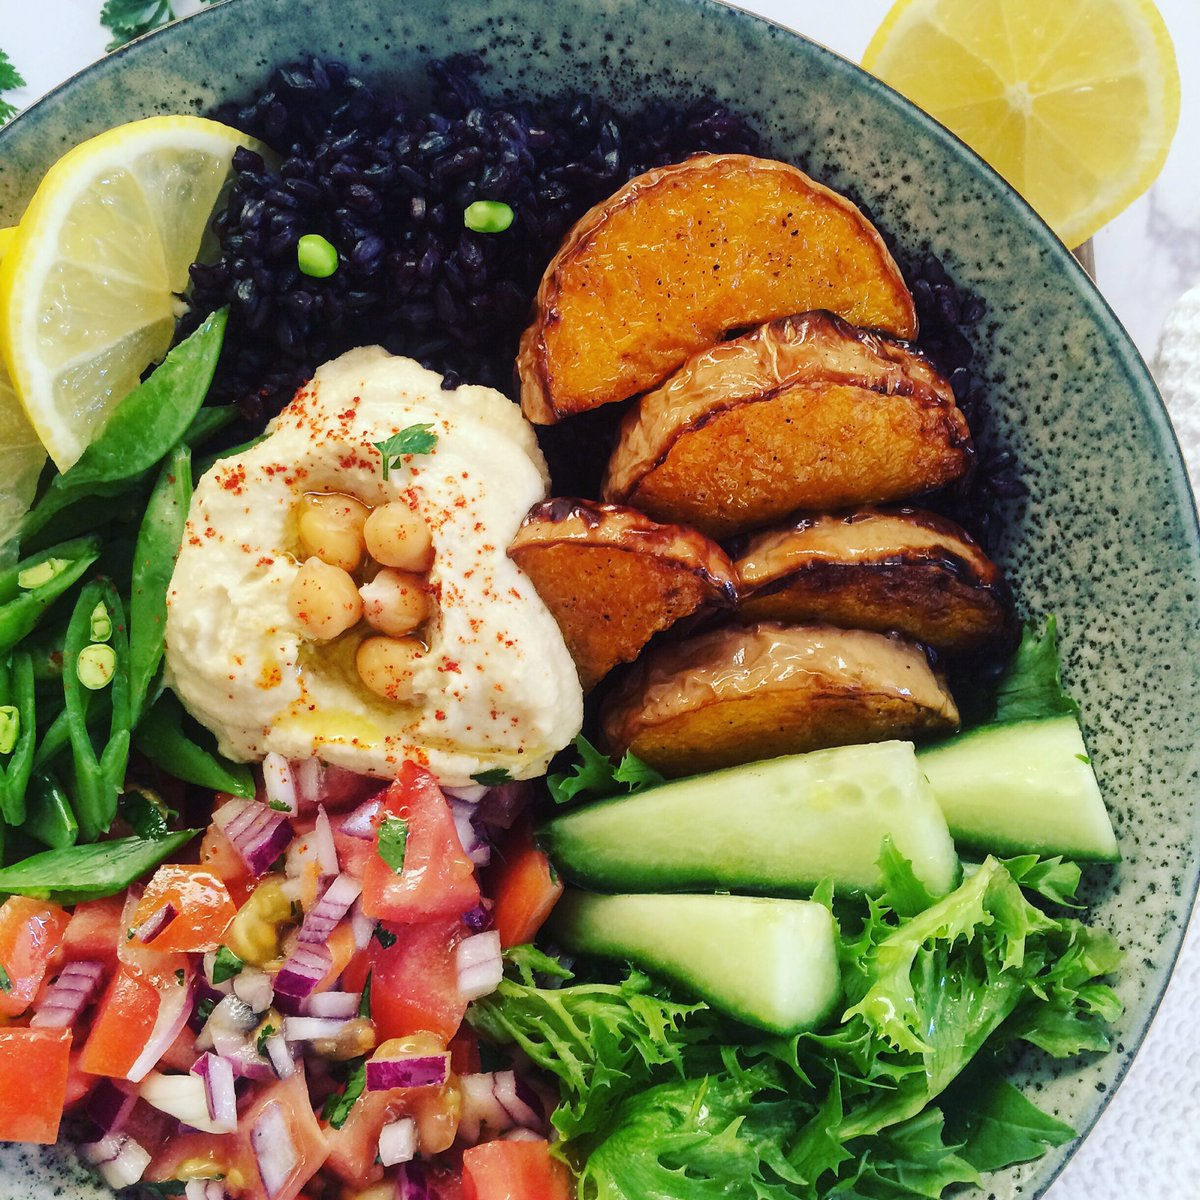 Black rice, baked butternut, salsa, spinach and lettuce, sugar snap peas, cucumber with a dollop of homemade hummus.  Happy Friday🌸  #glutenfree #vegan #FetchYourBody2020 https://t.co/VA9XnFTzZg